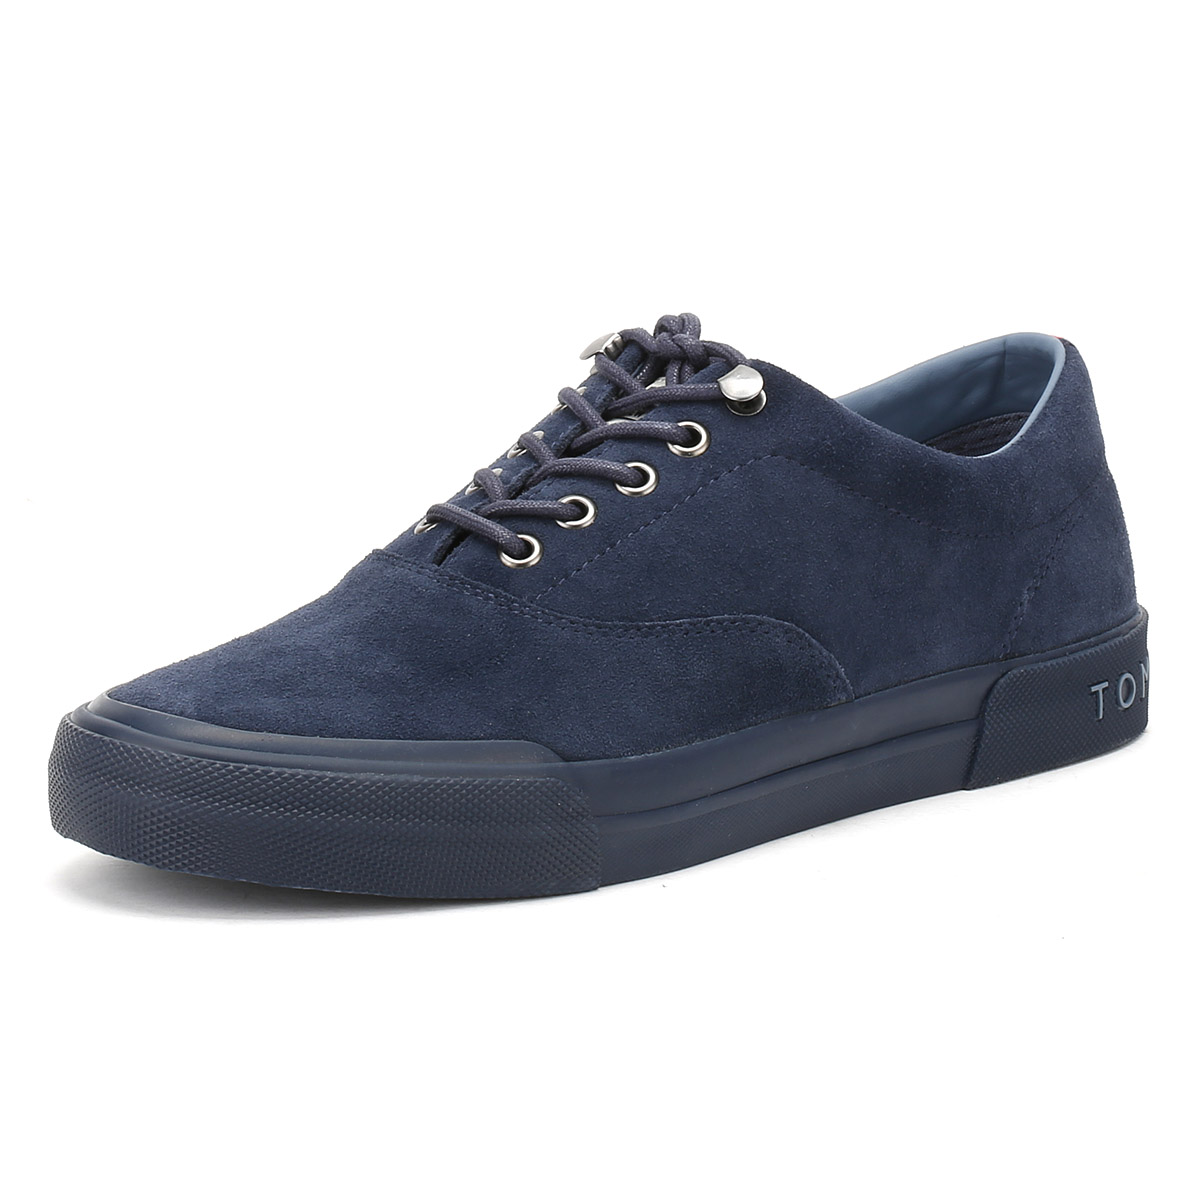 f8079e21a Details about Tommy Hilfiger Mens Navy Blue Suede Trainers Lace Up Sport  Shoes Y2285ARMOUTH